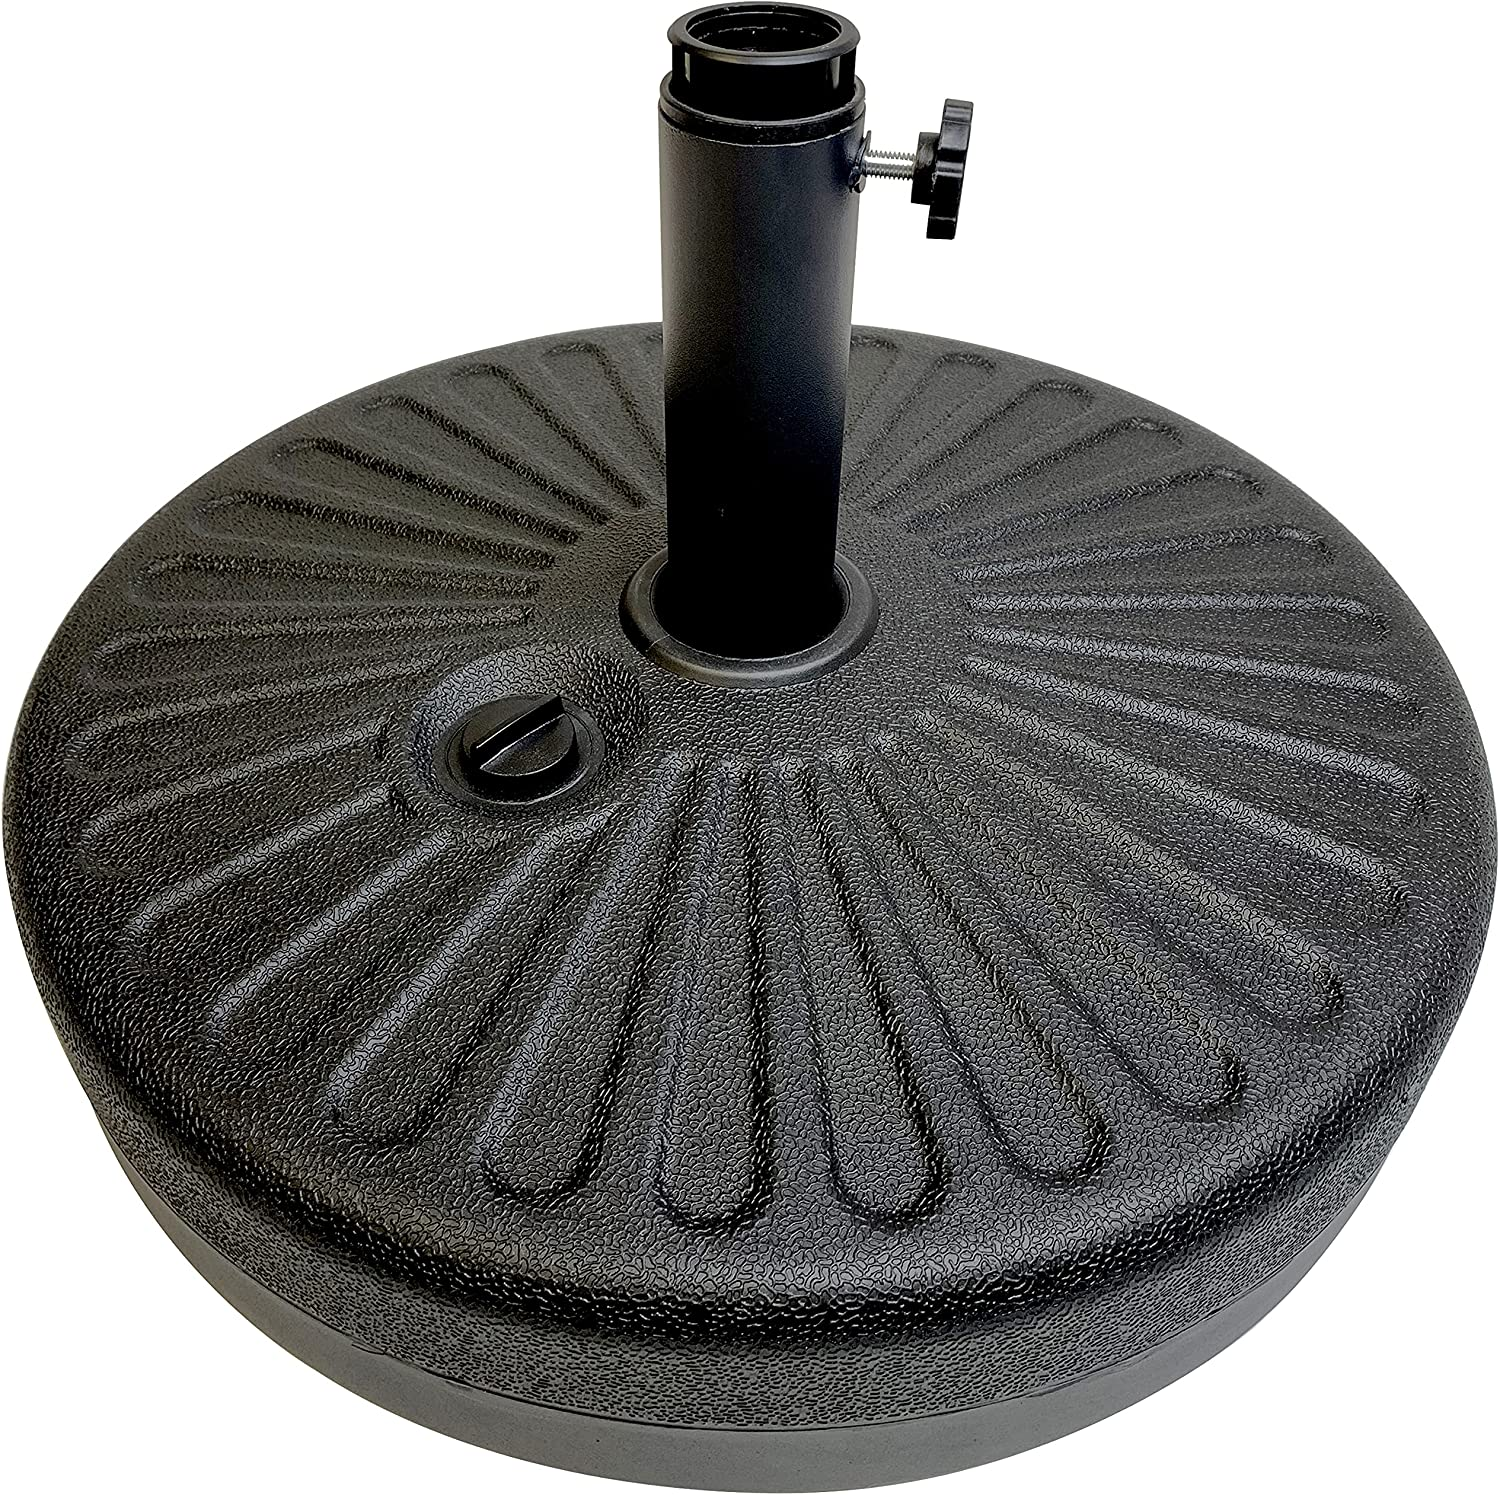 free shipping EasyGoProducts Umbrella Base EGP-BASE-004 Water Max 47% OFF Stand-Out Filled